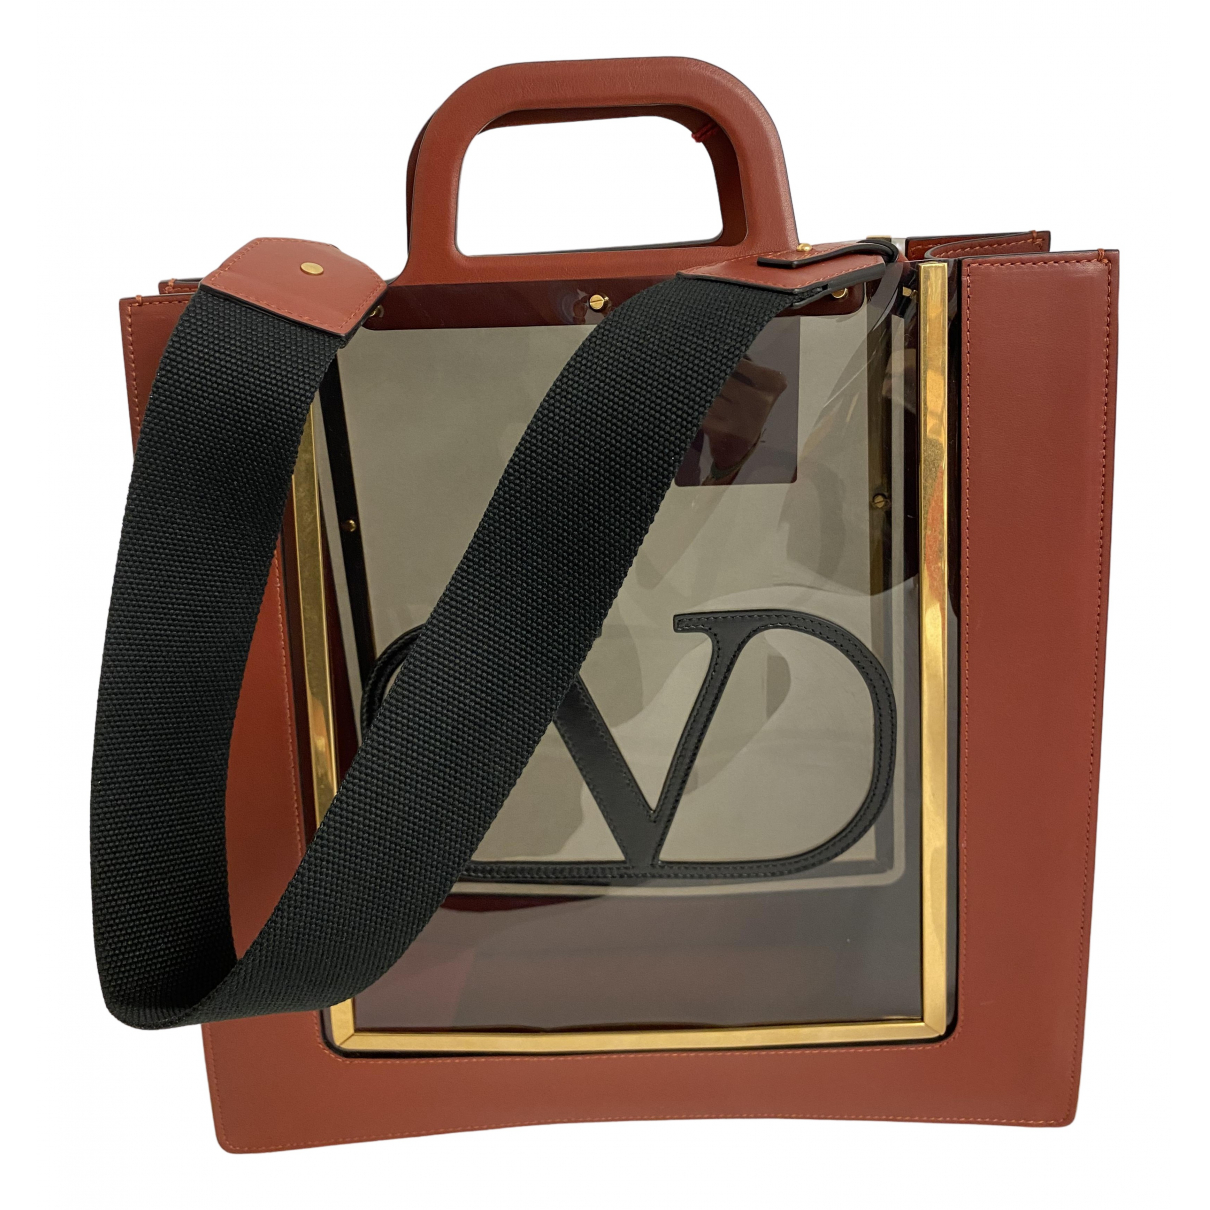 Valentino Garavani \N Brown Leather handbag for Women \N